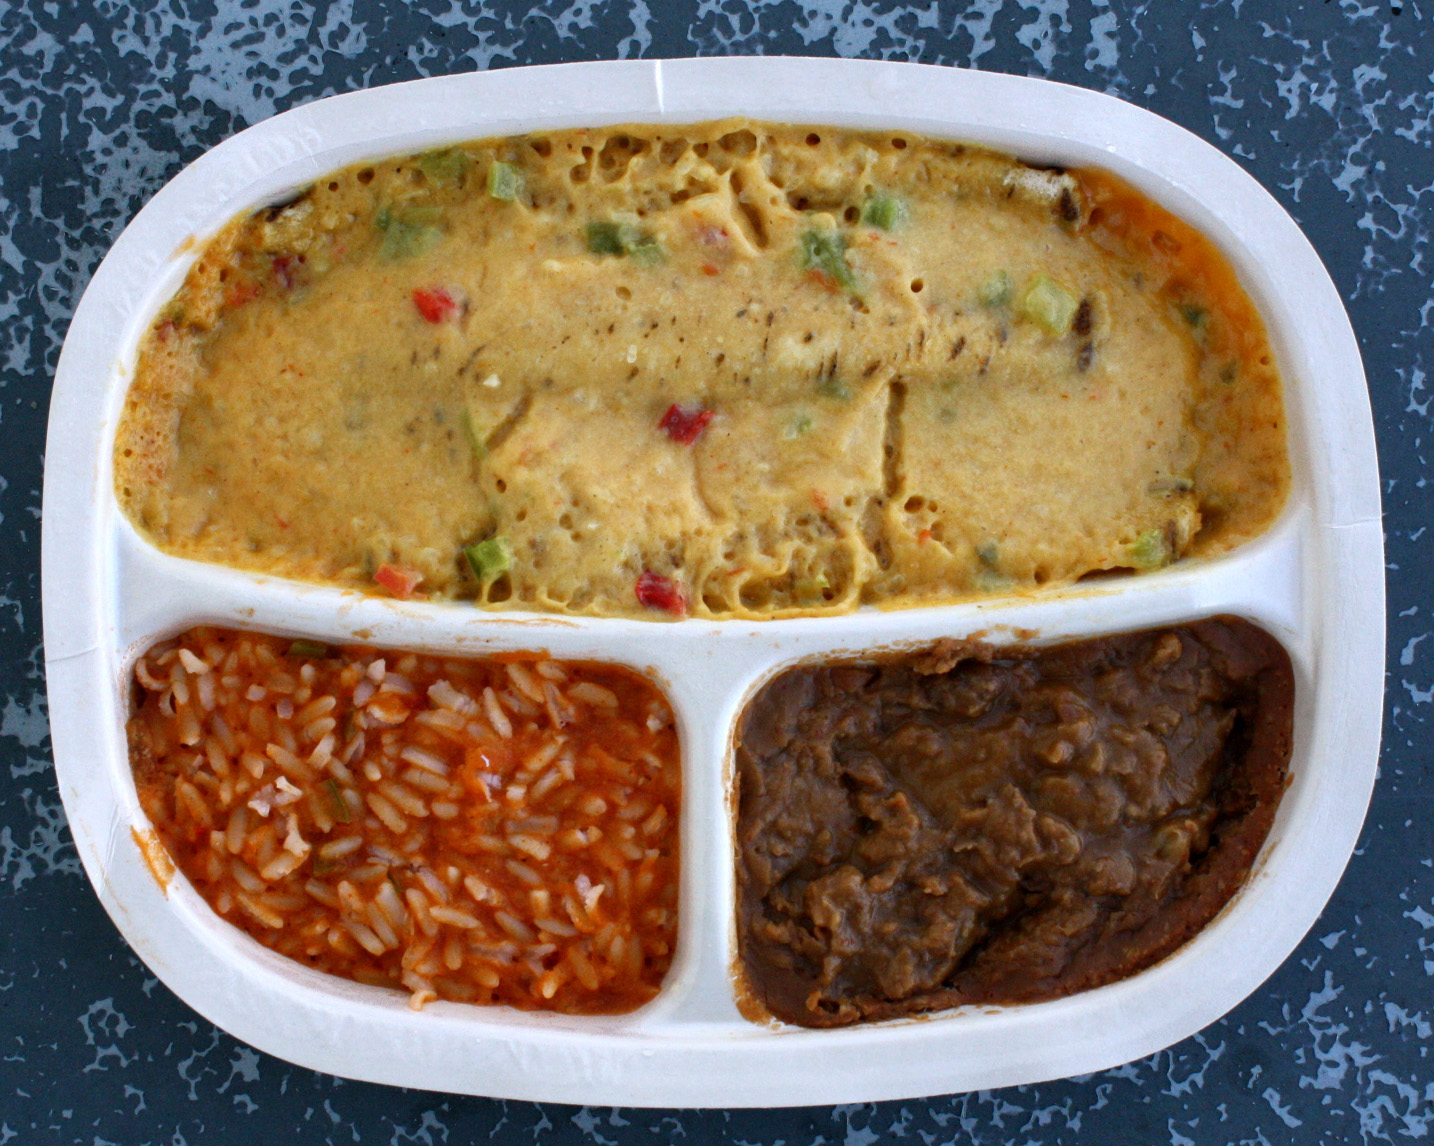 The 99 cent chef deal of the day queso enchilada dinner as with many cheap frozen mexican meals they are loaded with ingredients too many to read all the way through so this is something you dont want to forumfinder Choice Image